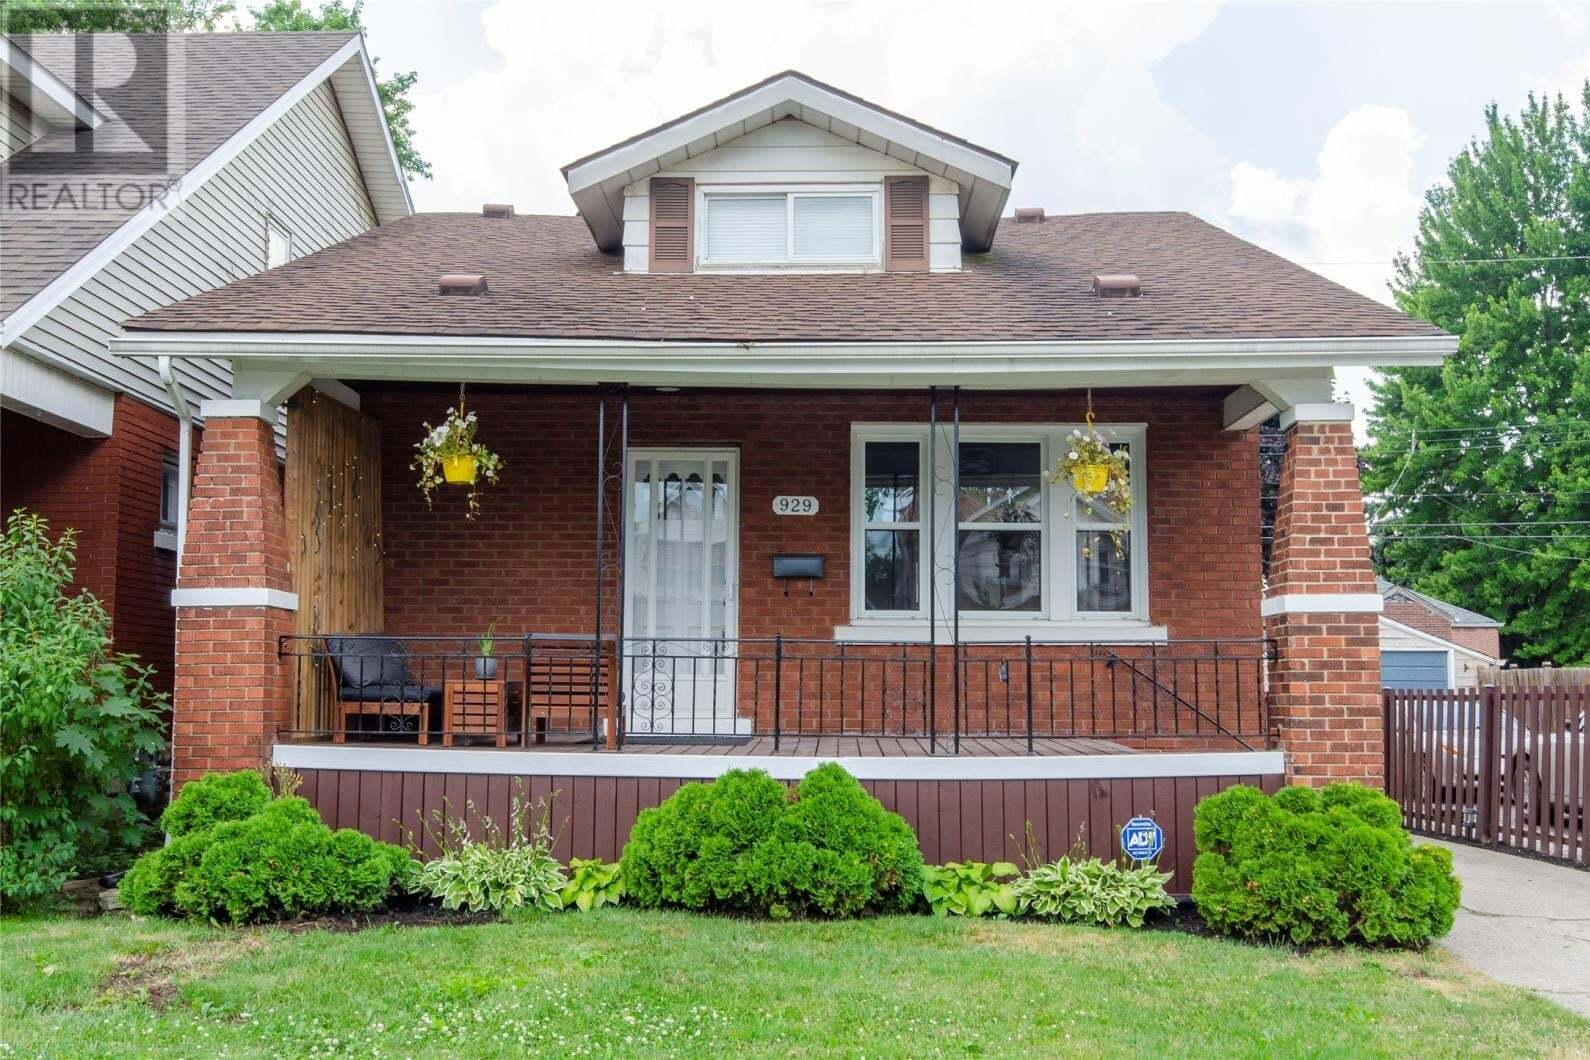 House for sale at 929 Lawrence  Windsor Ontario - MLS: 20008167